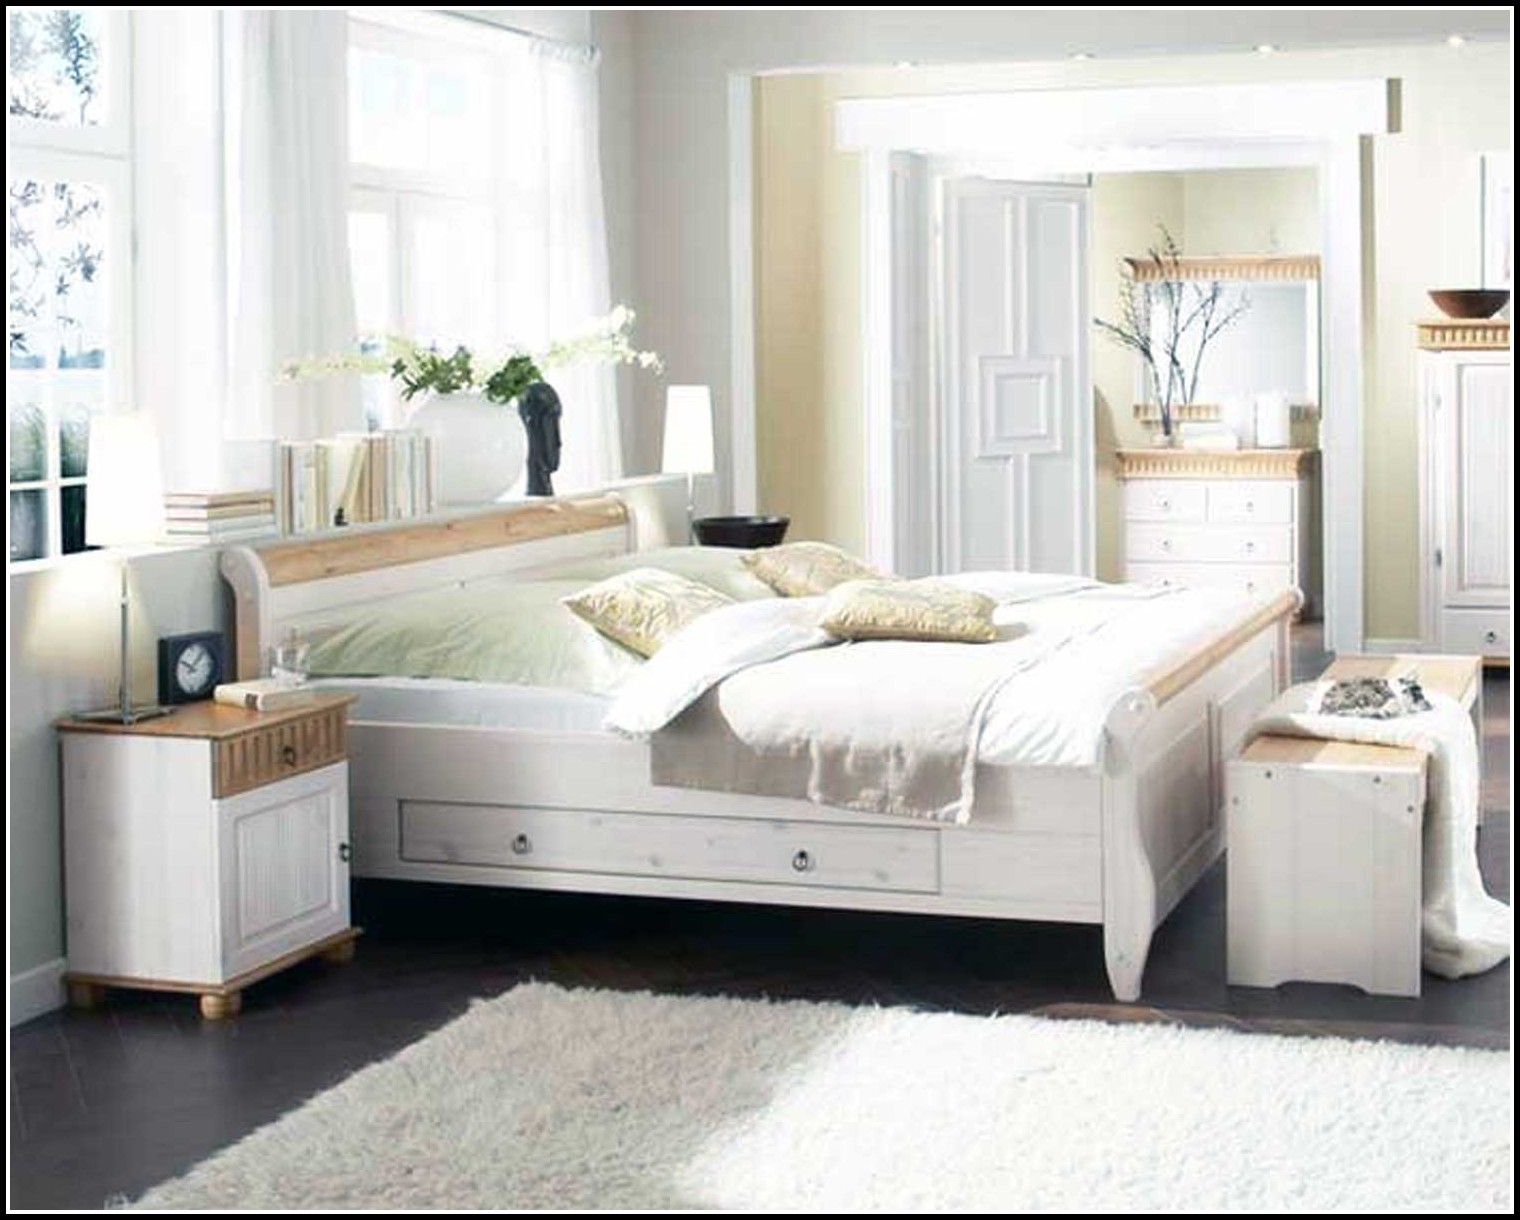 ikea betten weis hemnes betten house und dekor galerie pnwydnqkbn. Black Bedroom Furniture Sets. Home Design Ideas